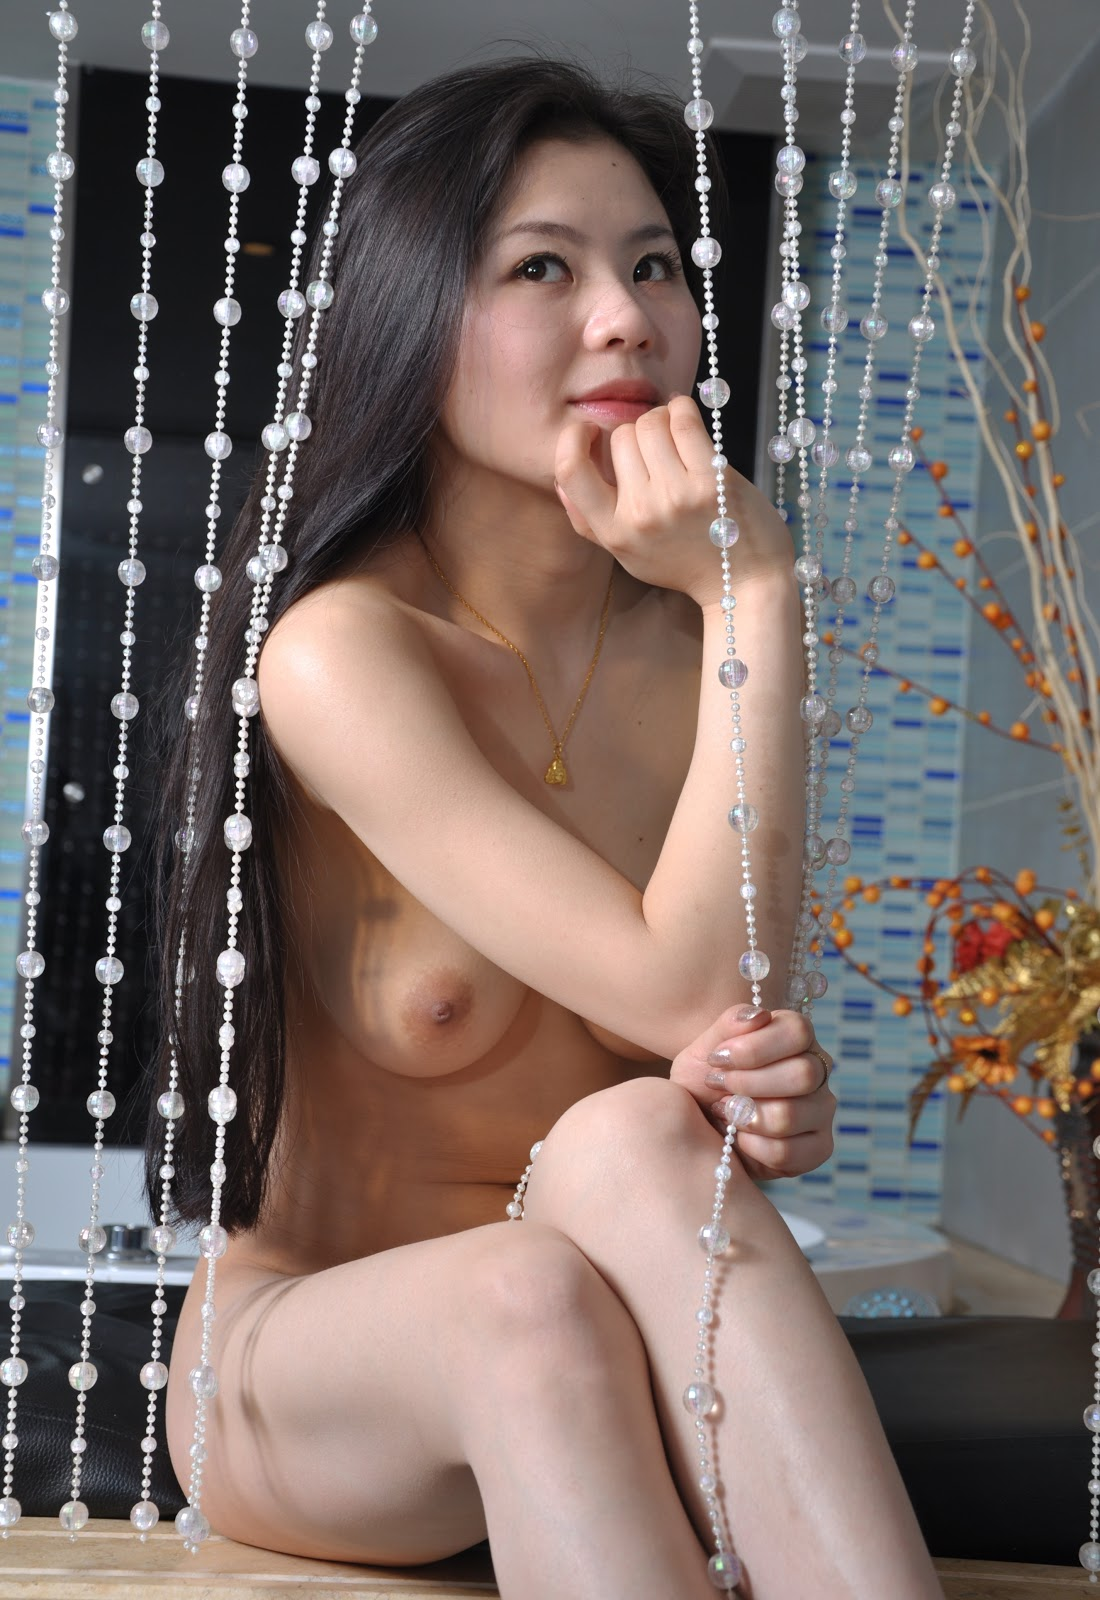 Chinese Nude_Art_Photos_-_194_-_ChengCheng.rar chinese 07040